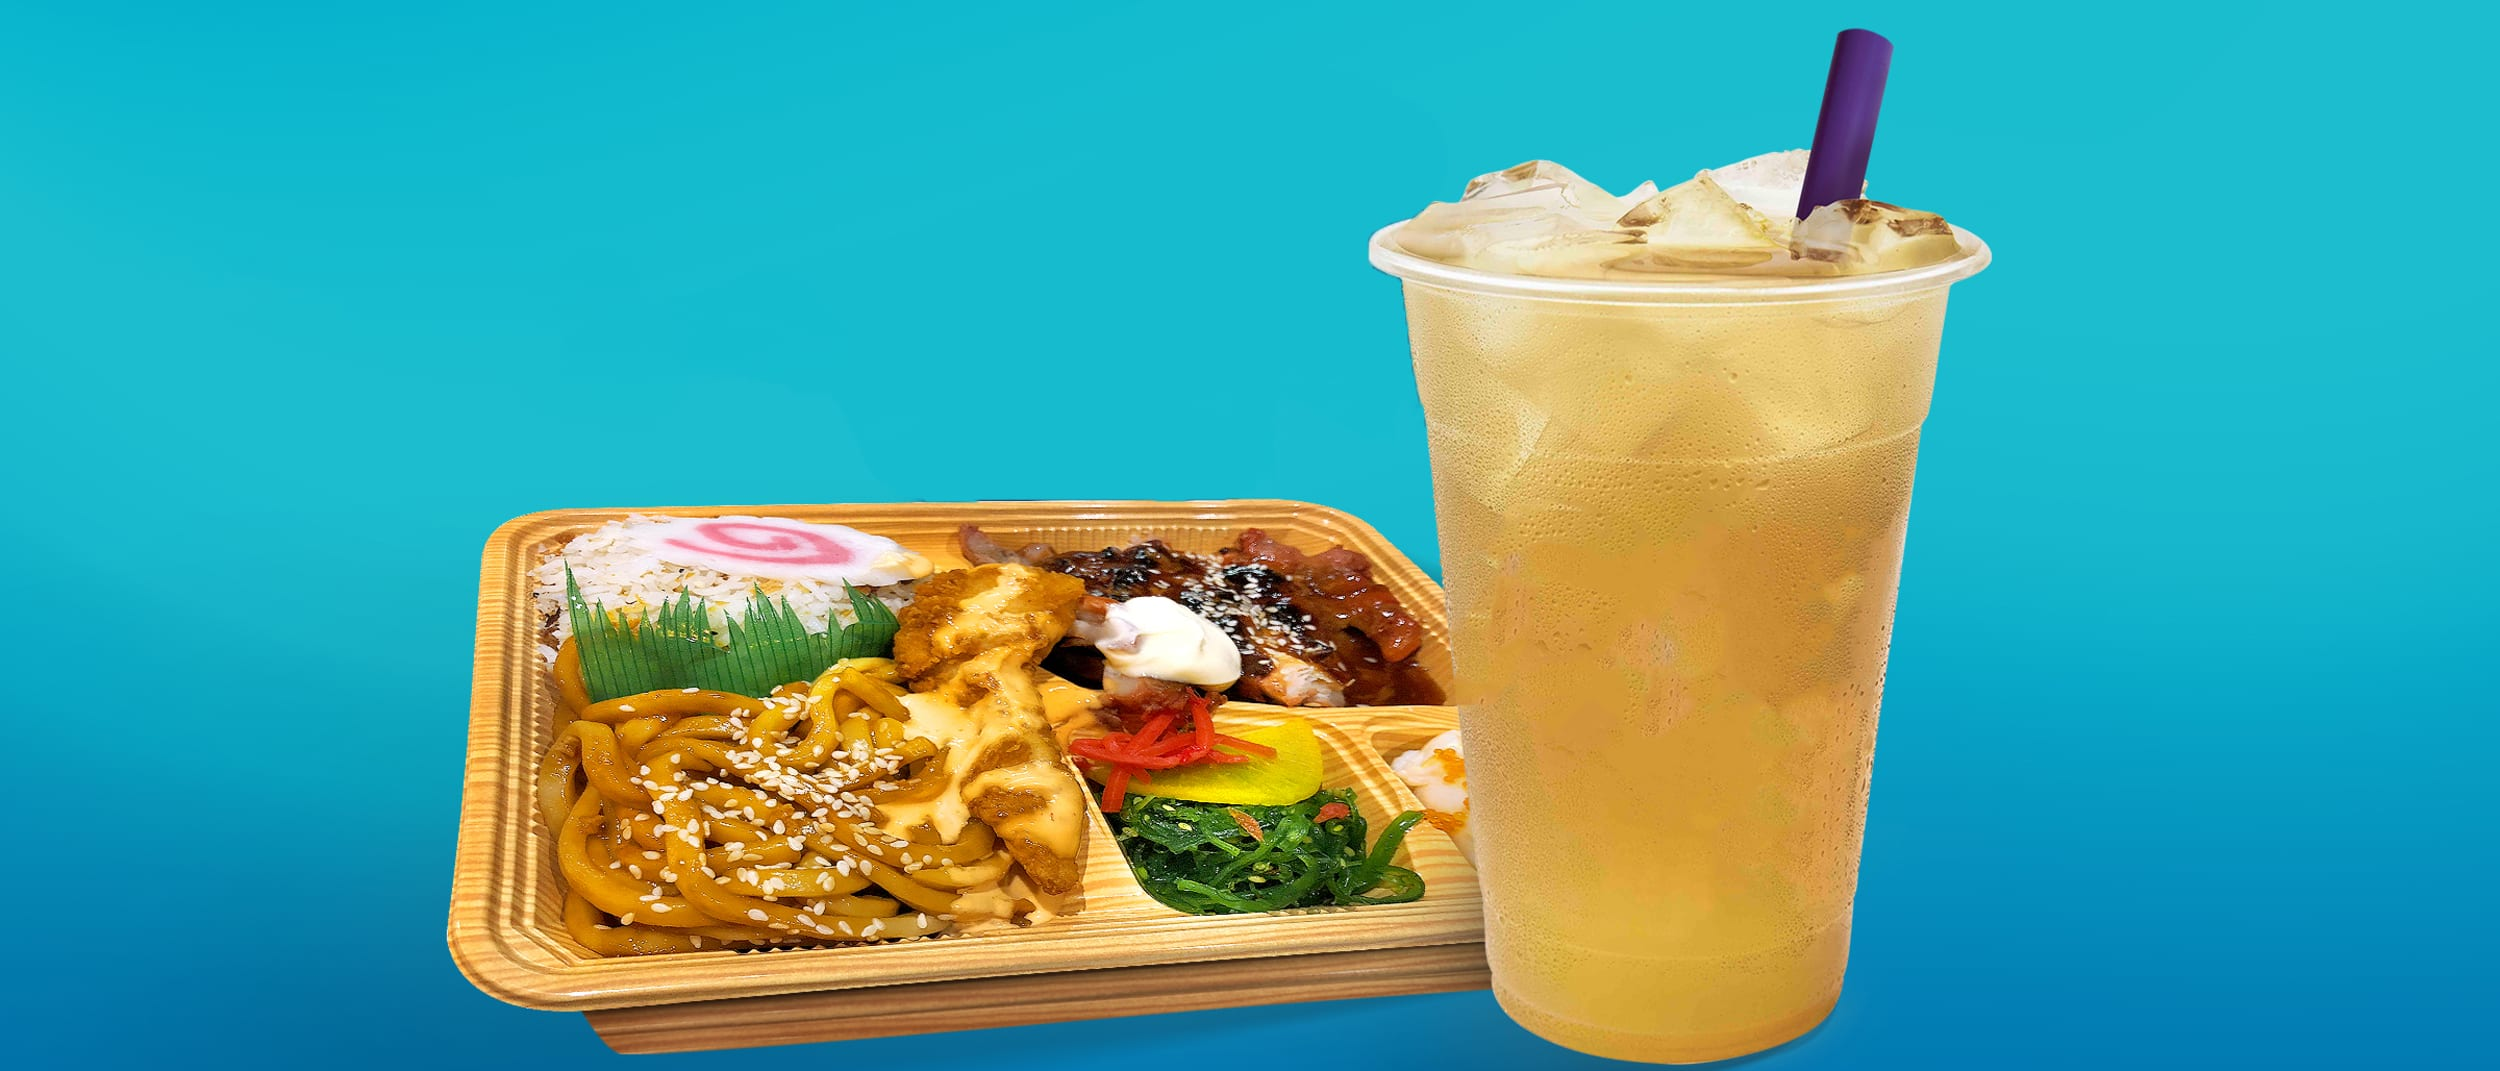 Free Chatime with Bento Box from Noodling